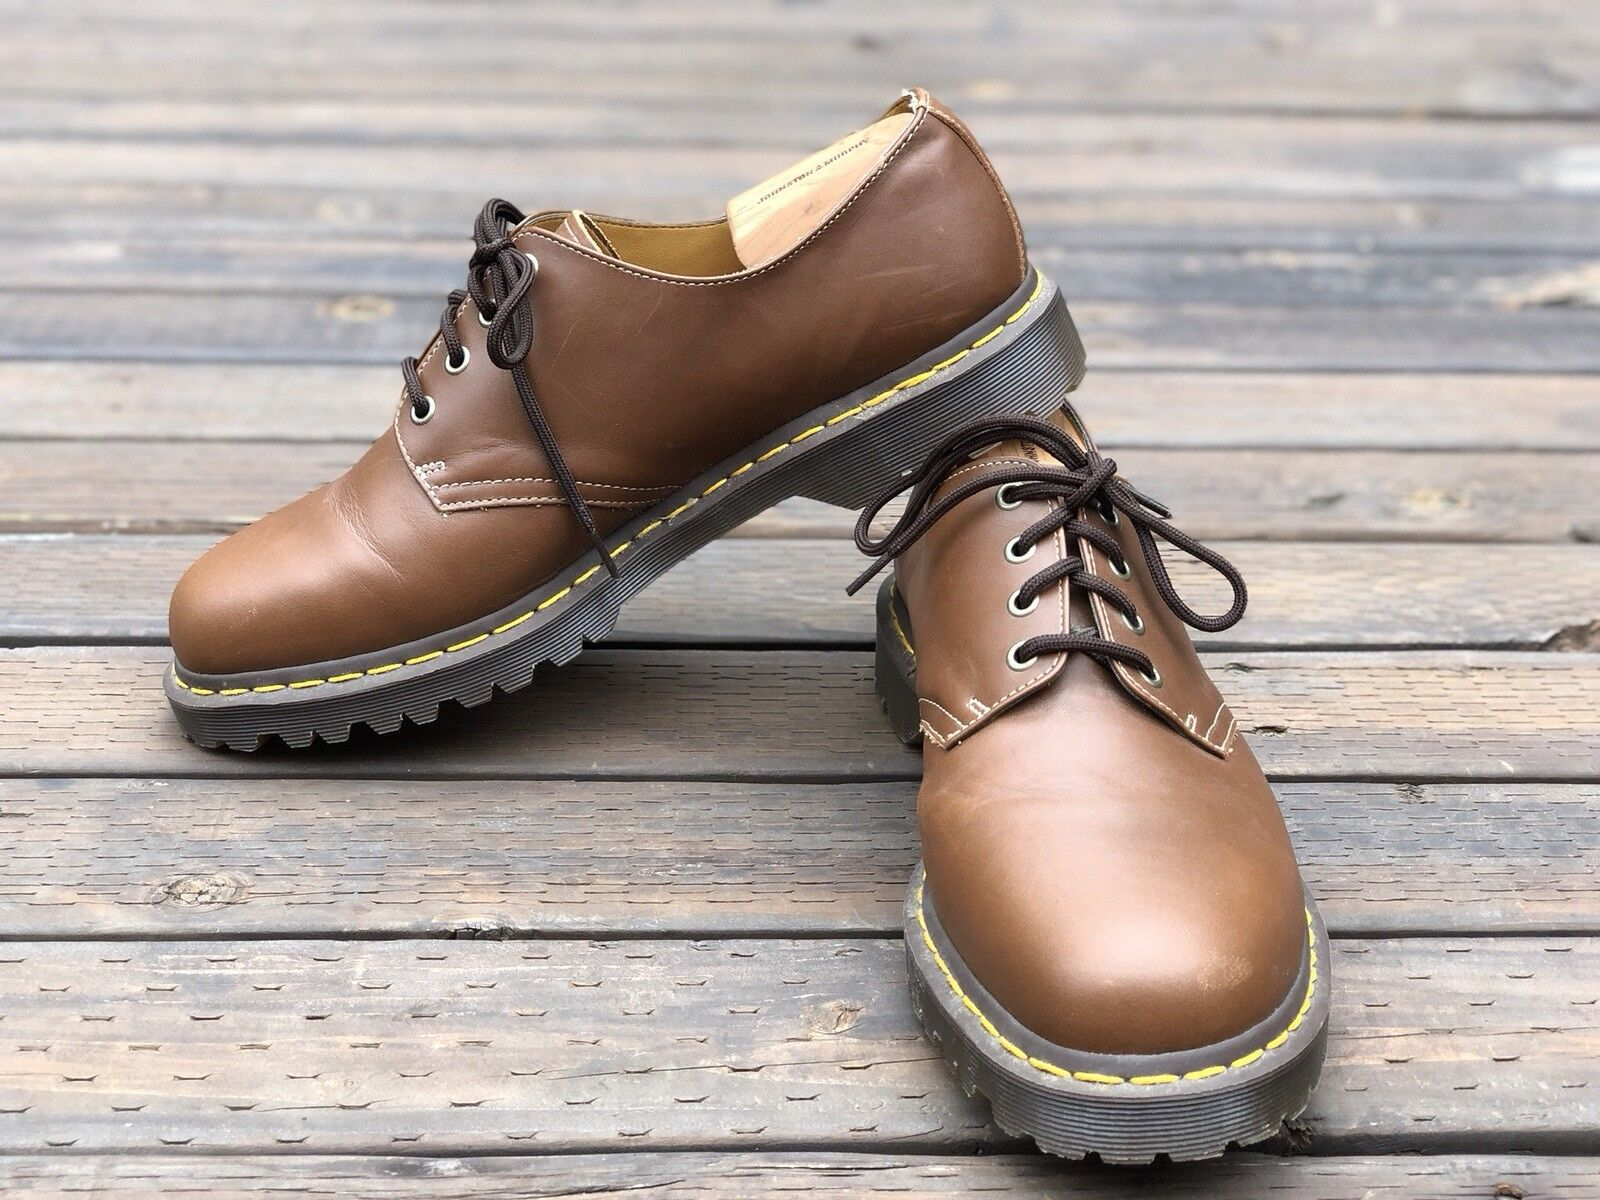 Dr Martens Uomo Brown Pelle Oxfords Classic Sole Size 13 M